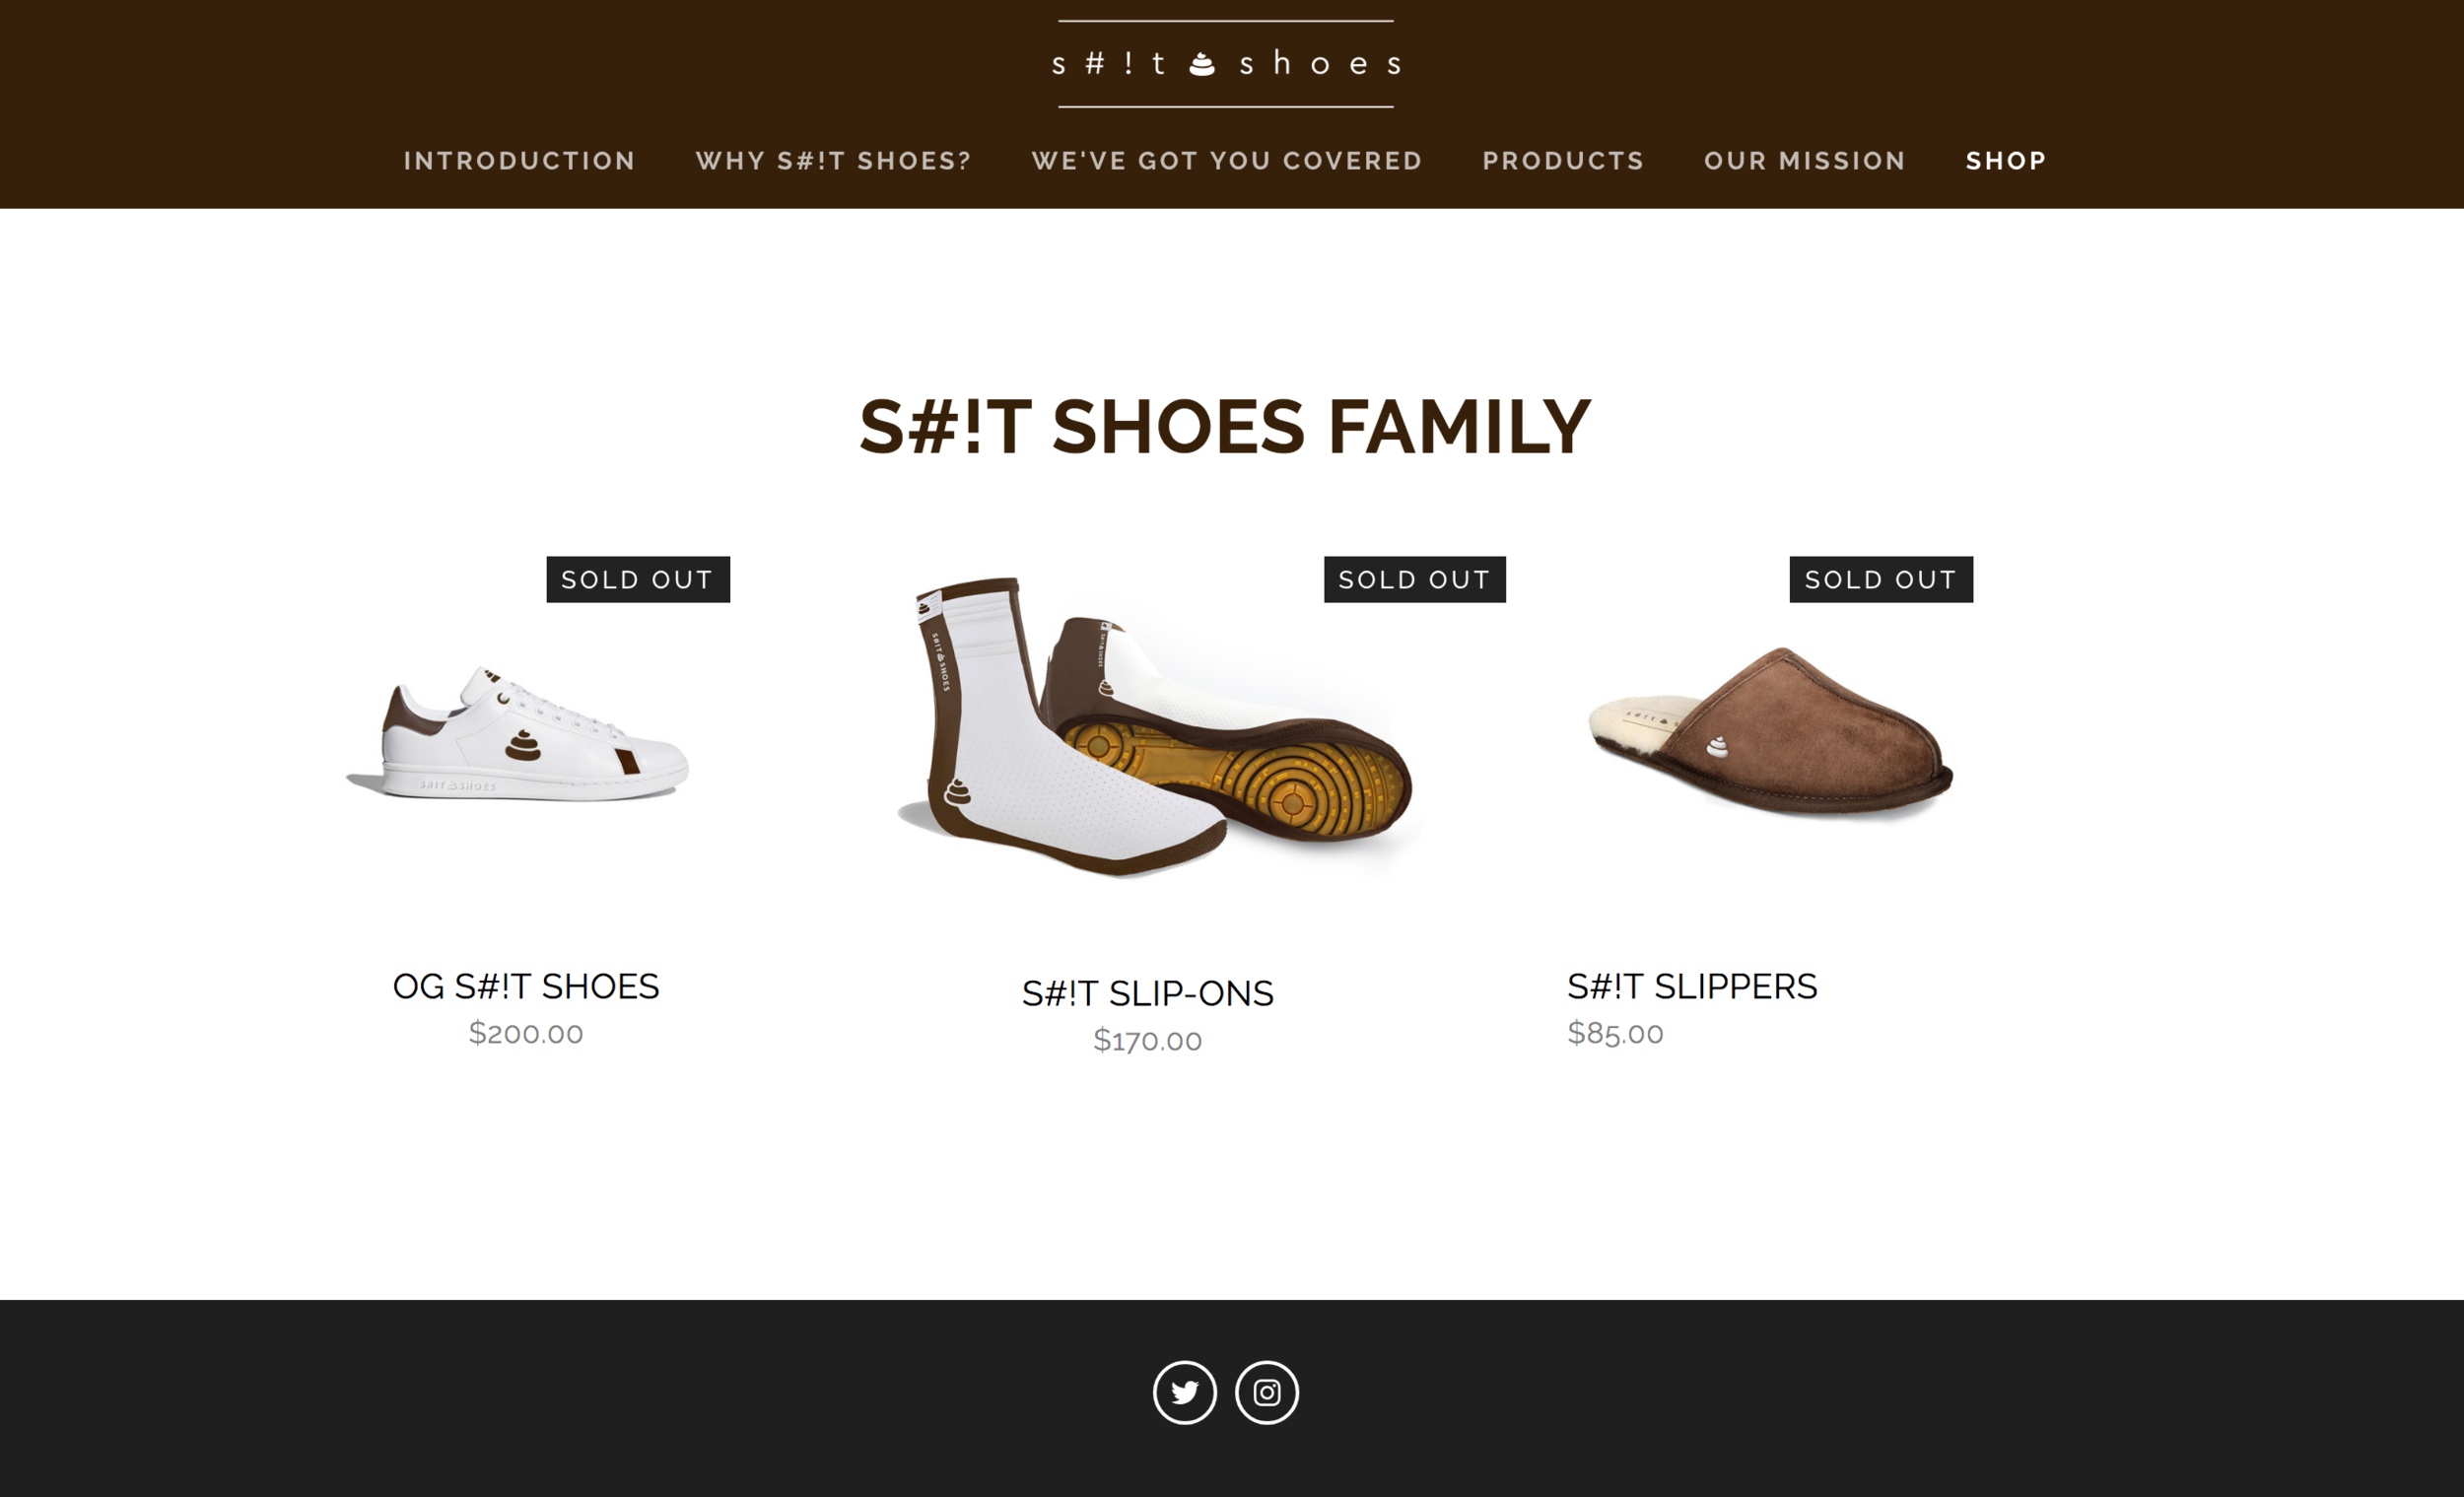 shit-shoes-product-family.png